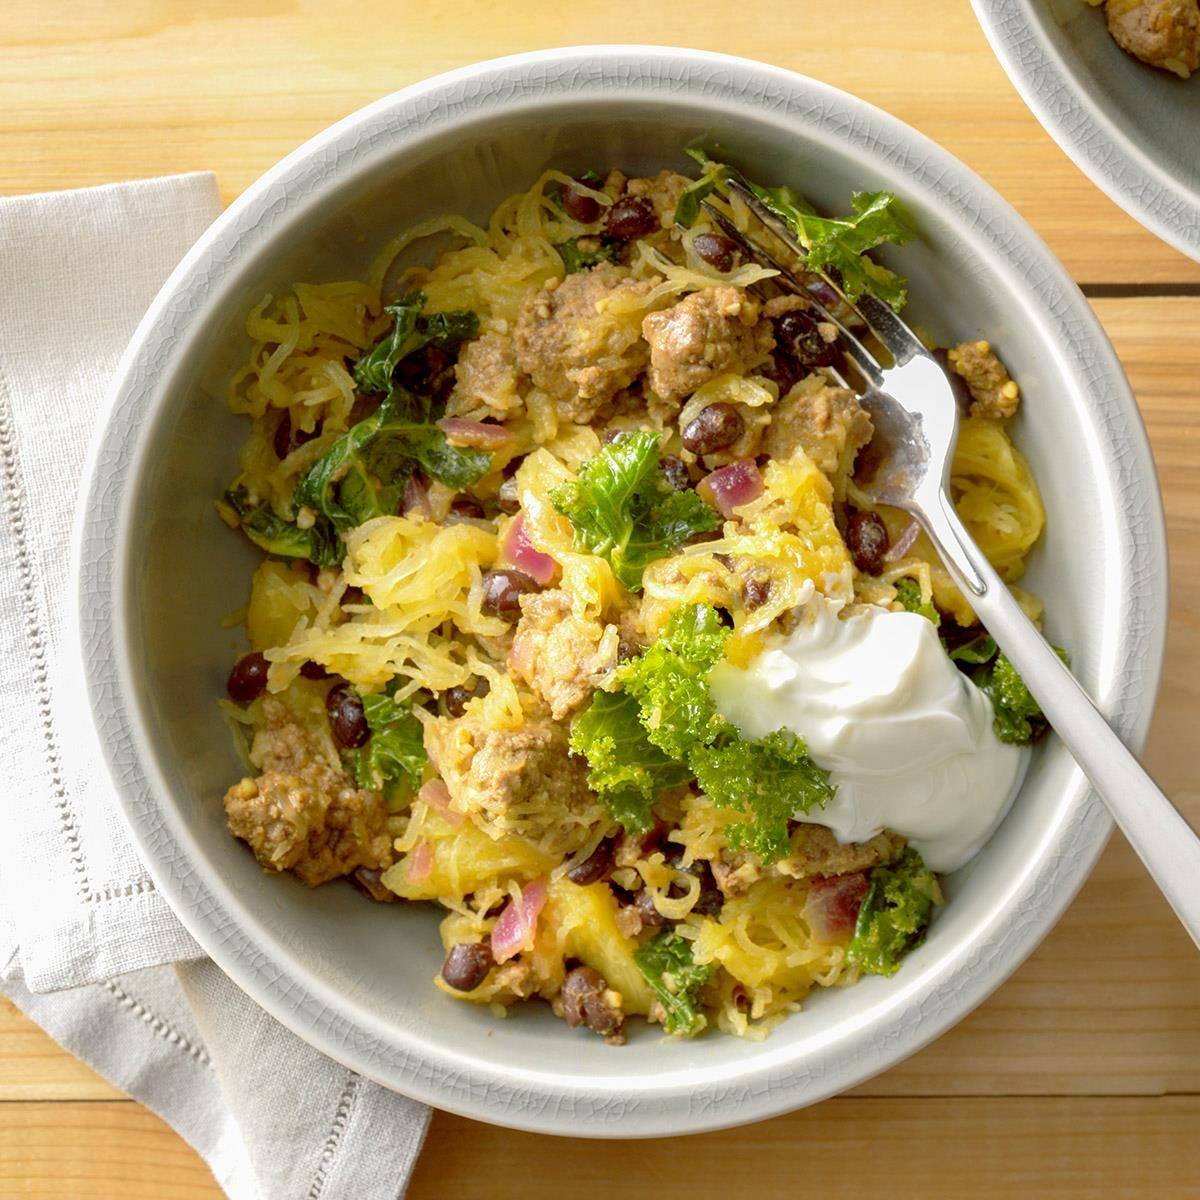 Day 7 Dinner: Beef and Black Bean Spaghetti Squash